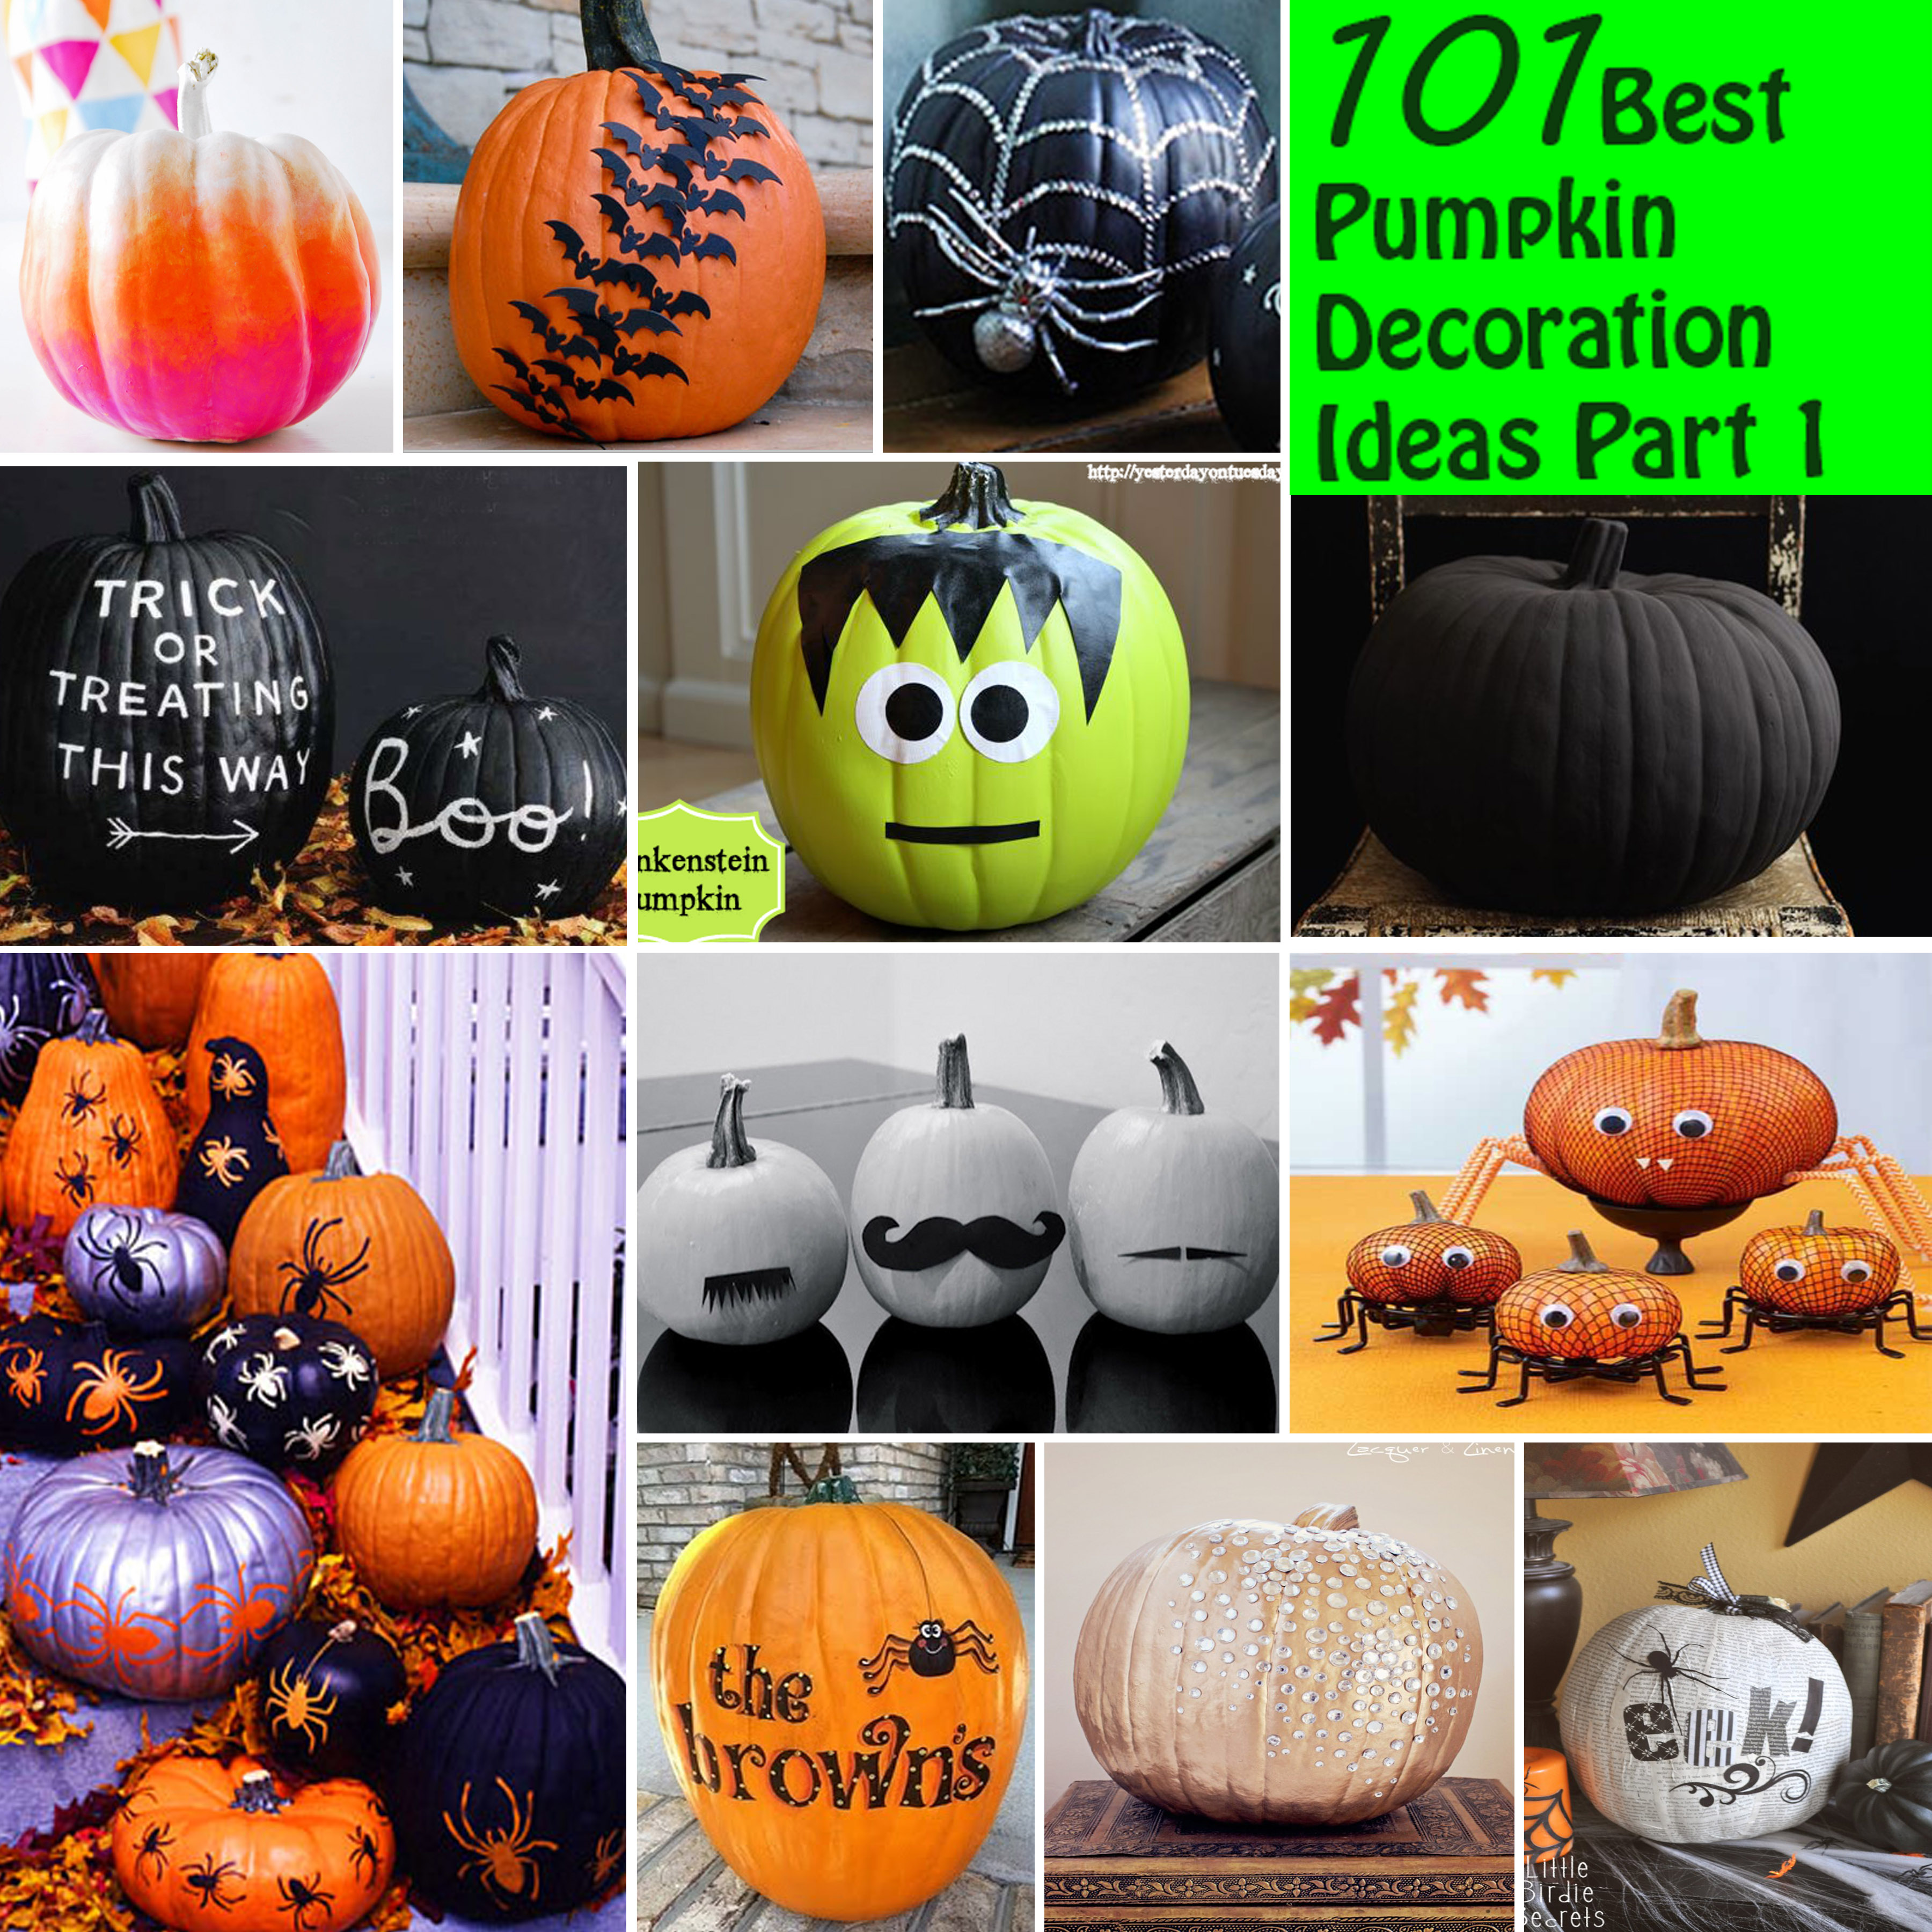 101 Best Pumpkin Decoration Ideas Part 1